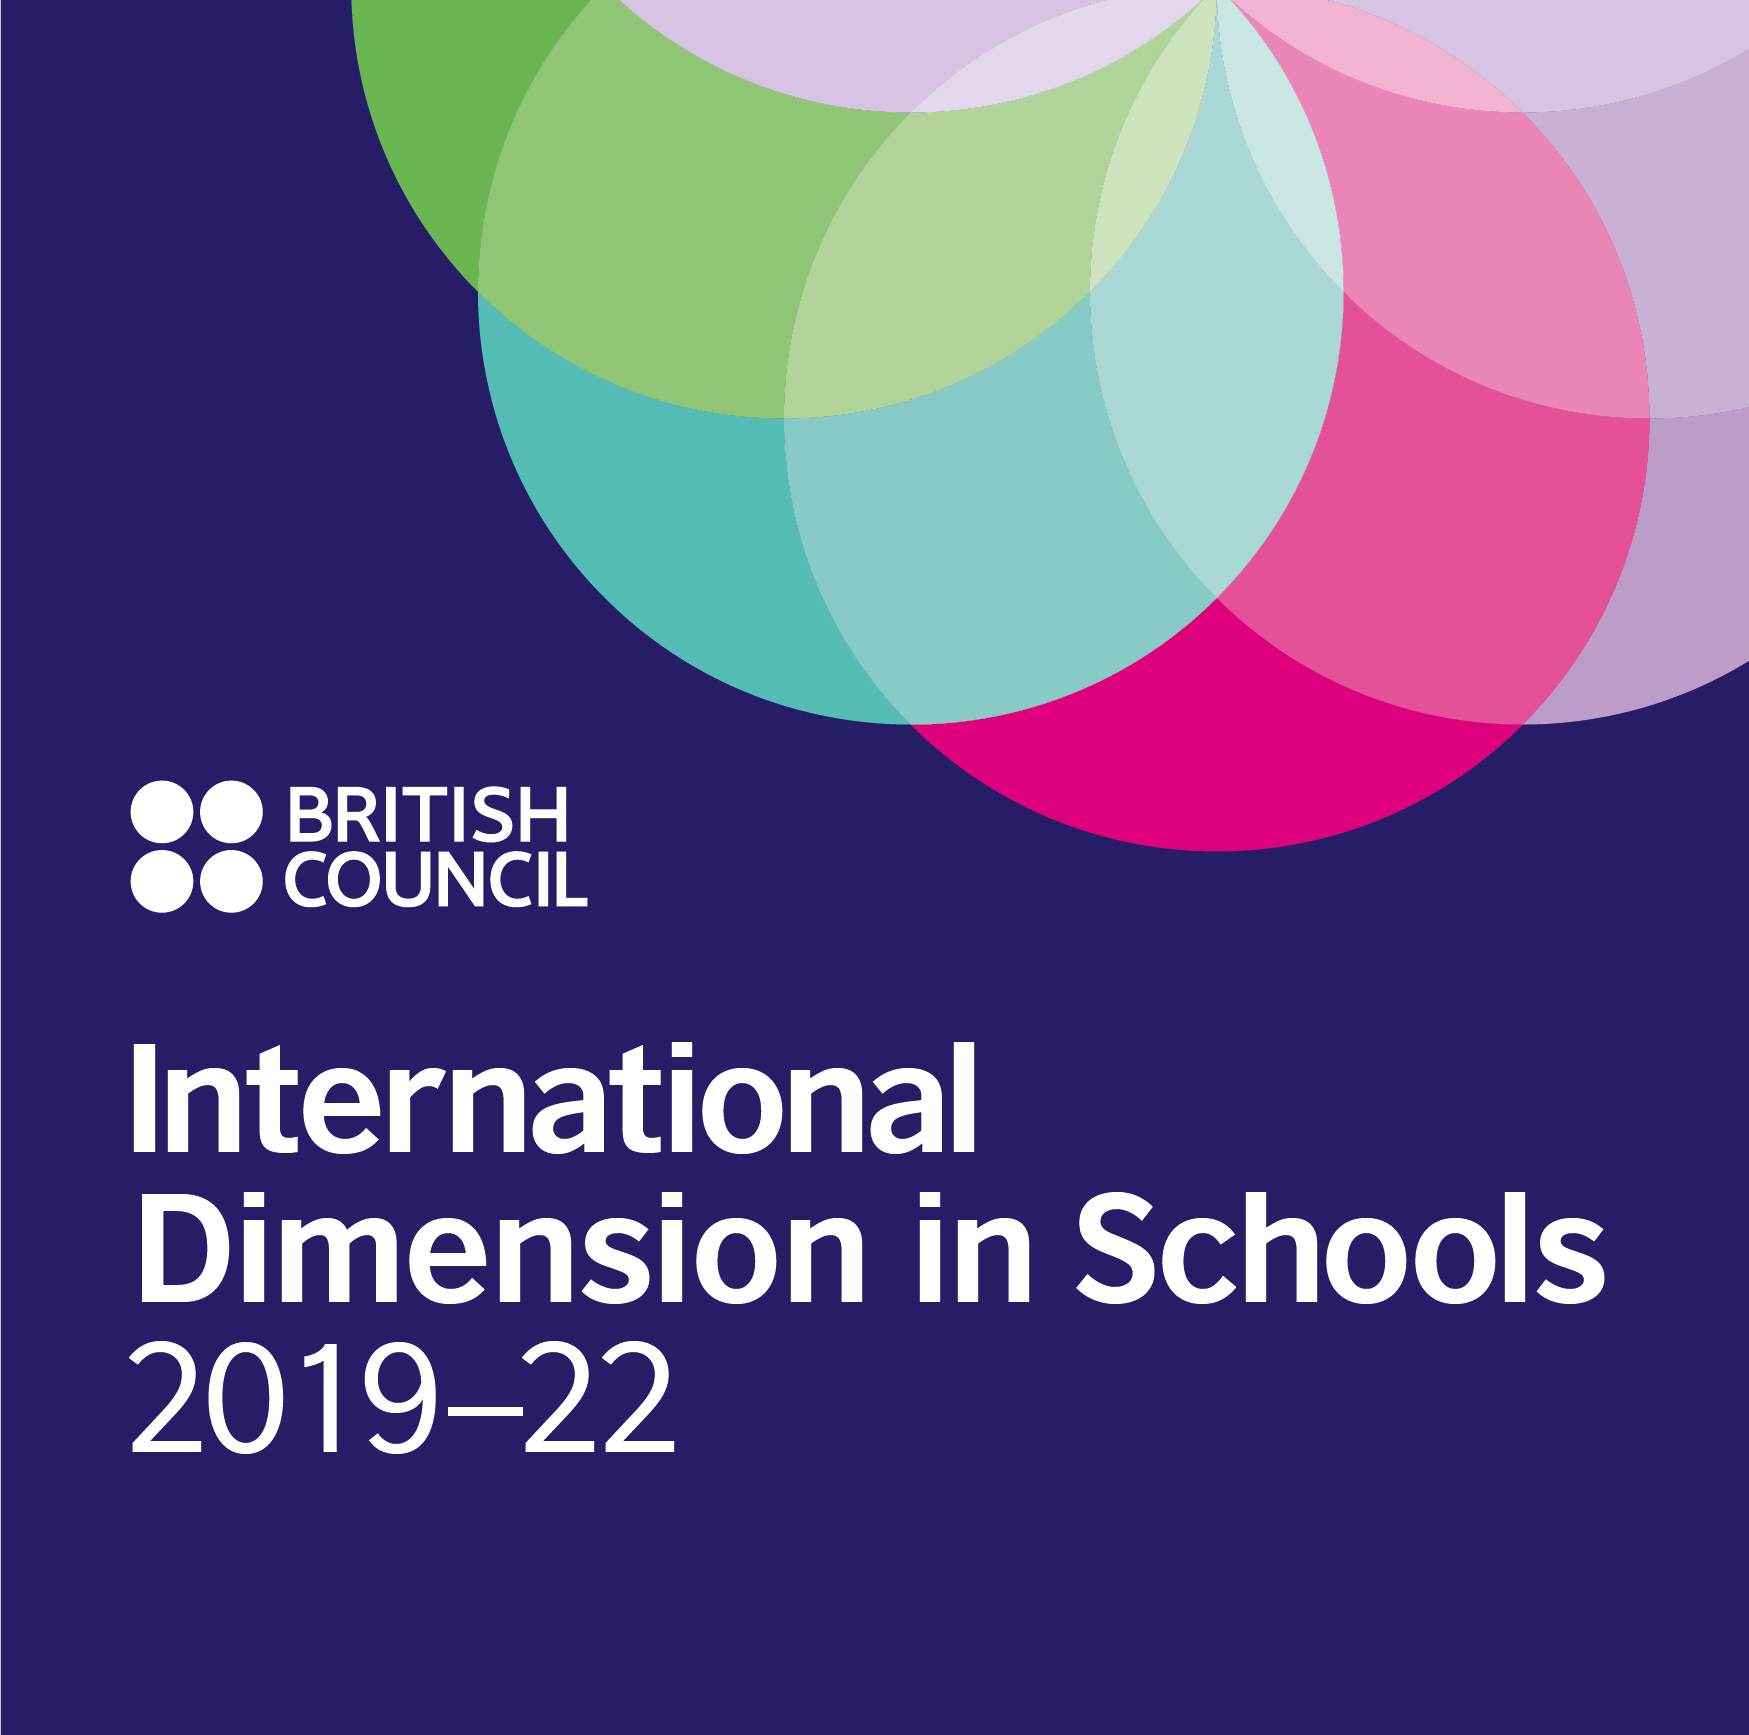 Awarded the INTERNATIONAL DIMENSIONS IN SCHOOLS by the British Council